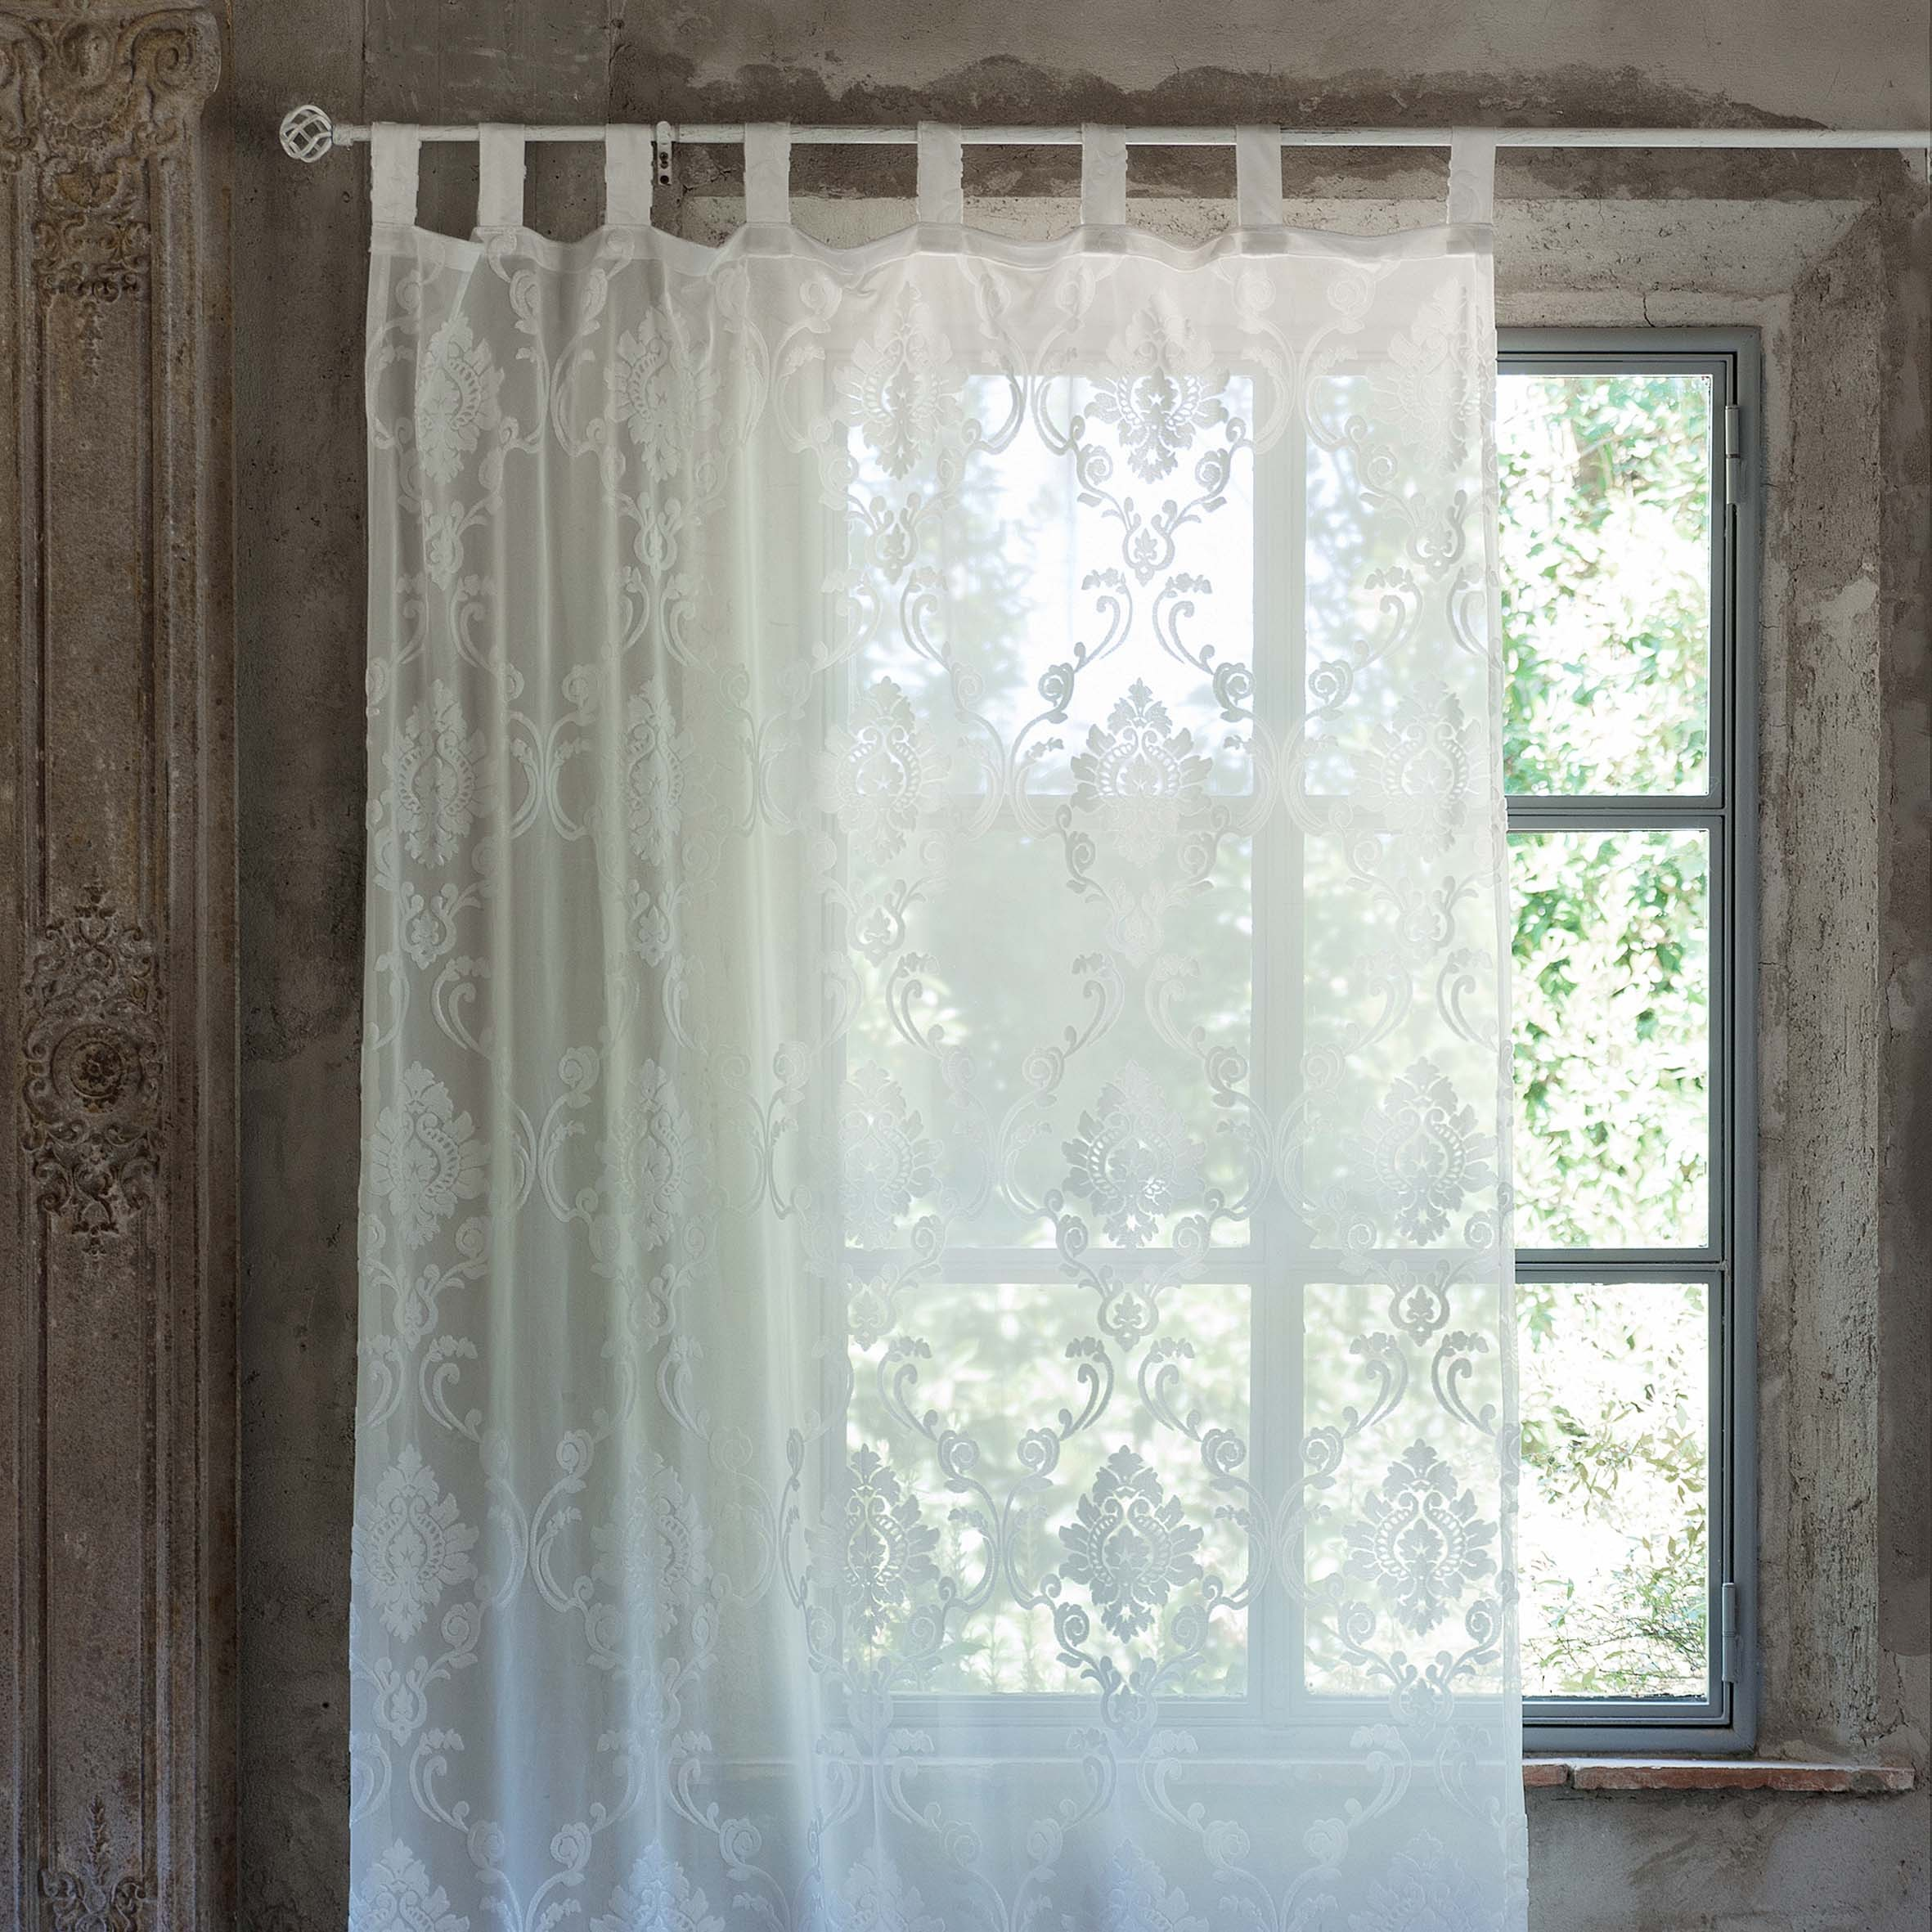 Long curtain Charlotte 150 x 290 cm by Blanc Mariclo, ideal for a ...